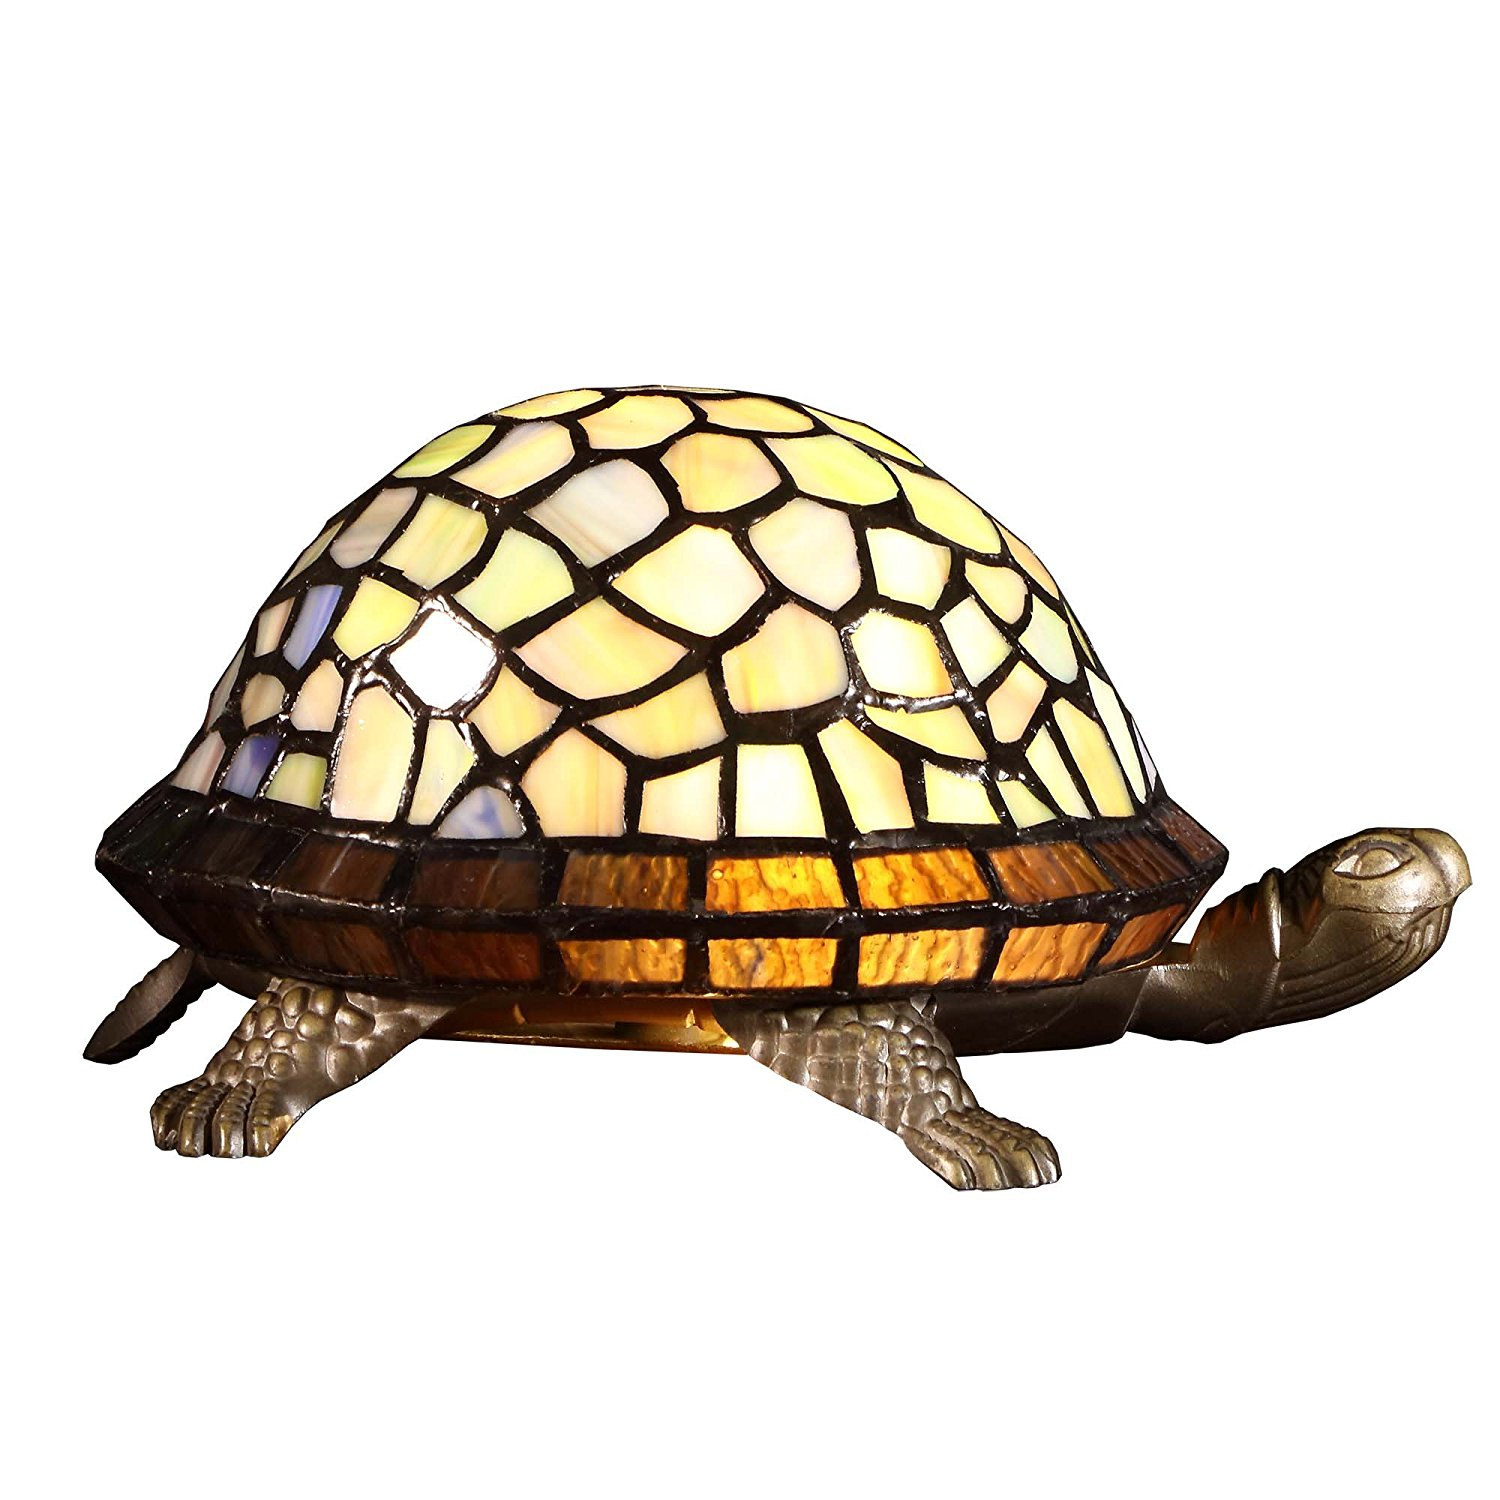 Bieye L10400 9 Inches Tortoise Tiffany Style Stained Glass Accent